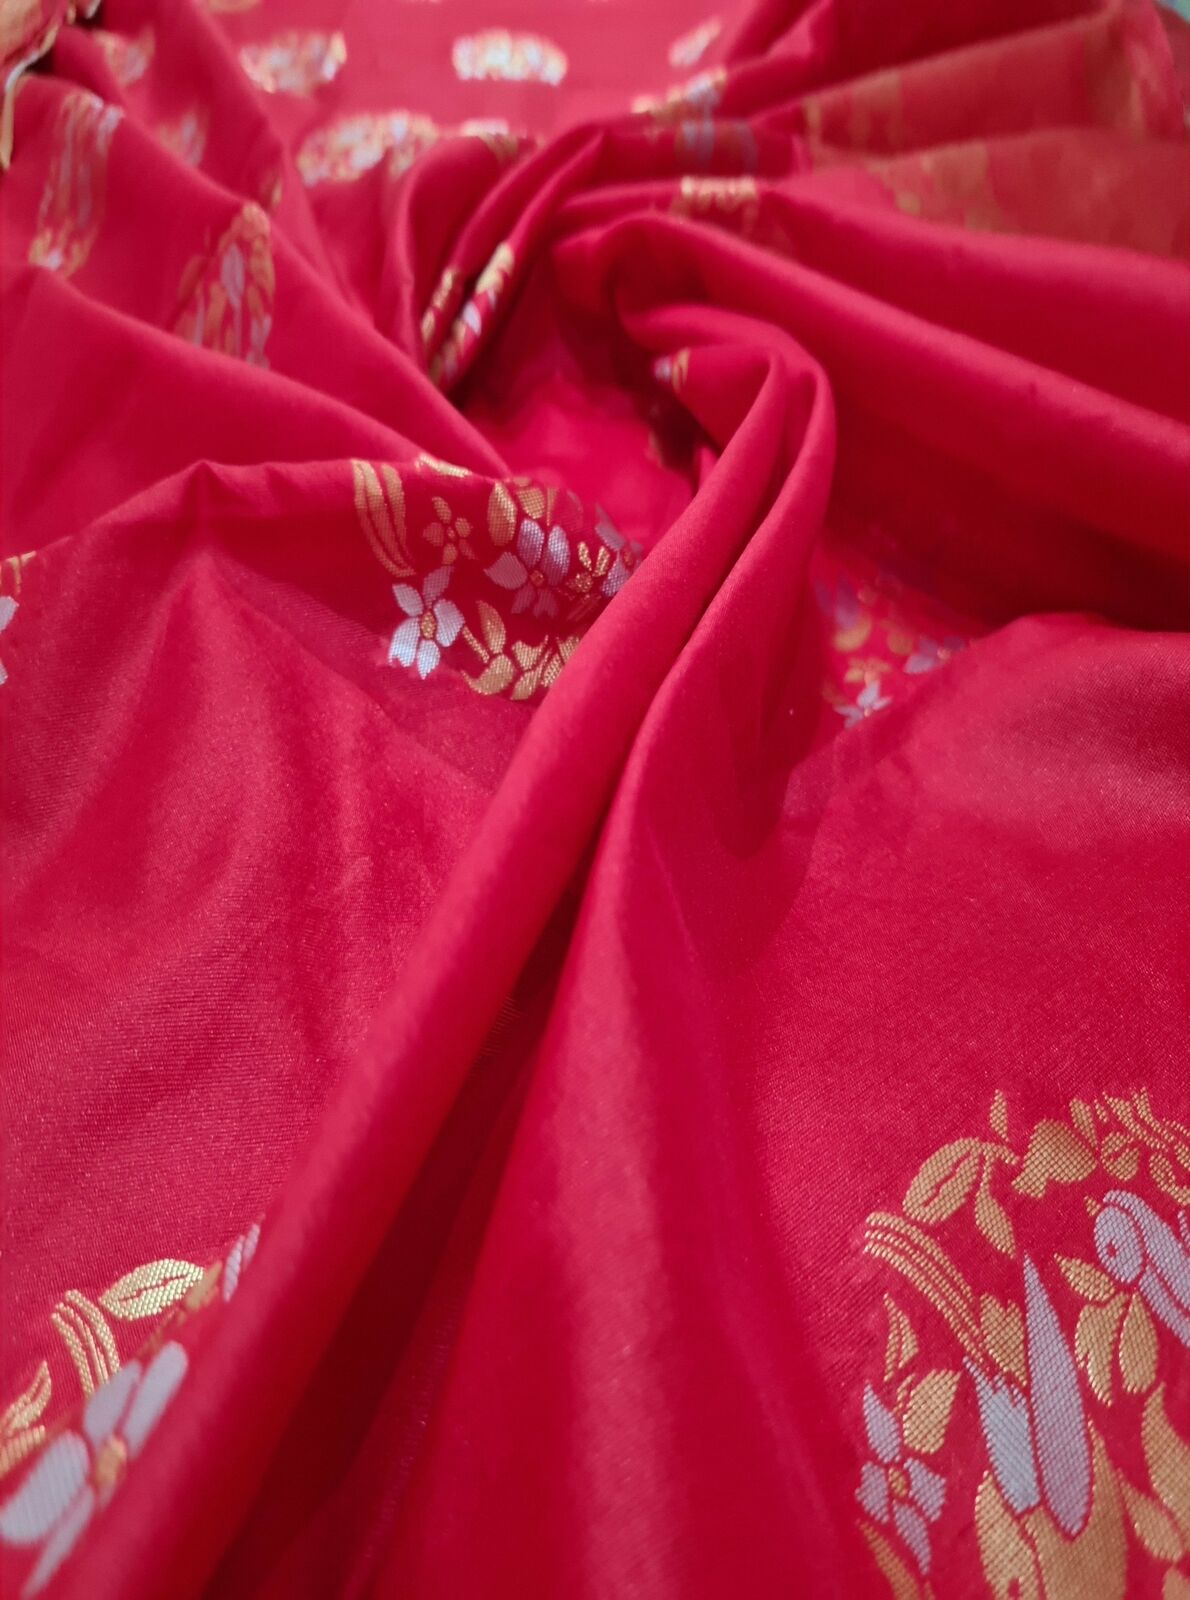 Red & Golden blended Silk Saree - Light Weight - Double Broad Border - Fall and